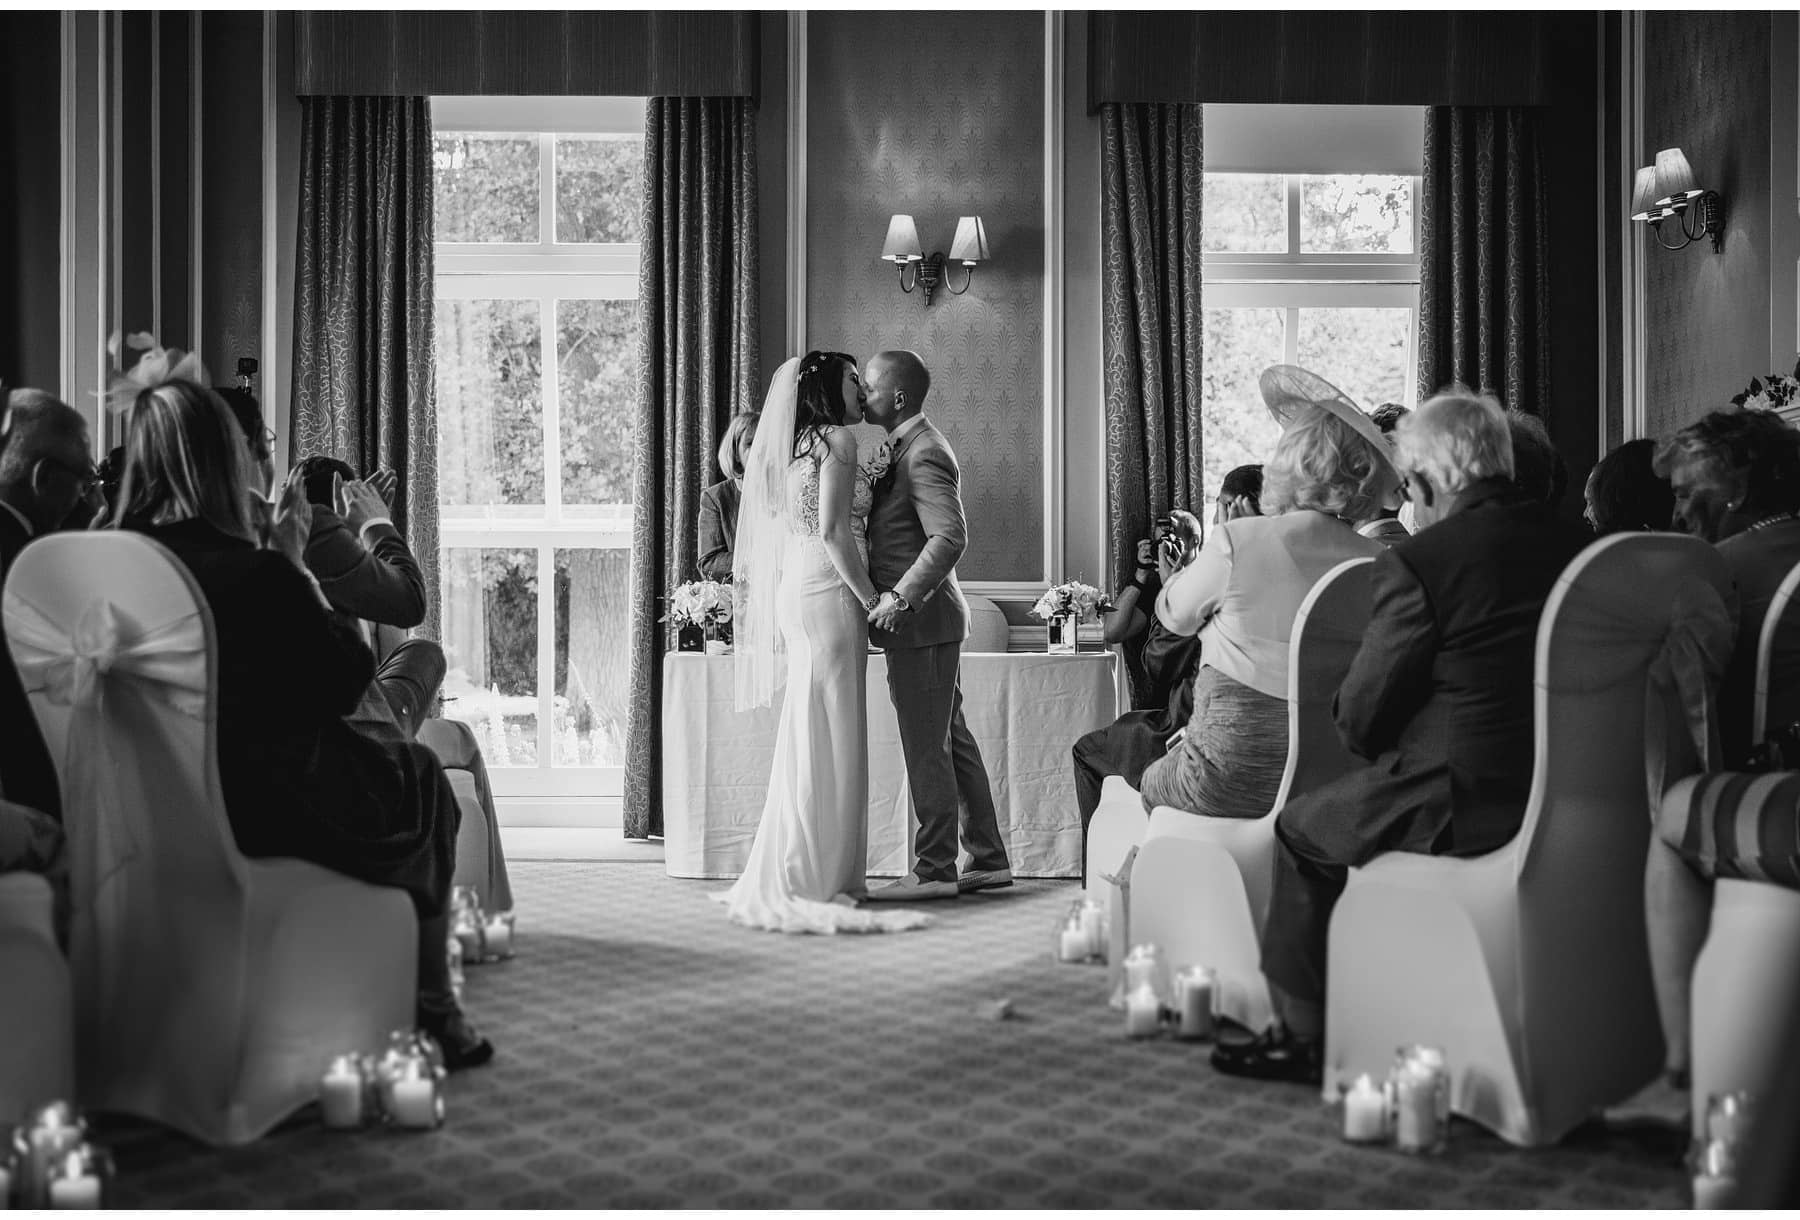 the bride & groom's first kiss